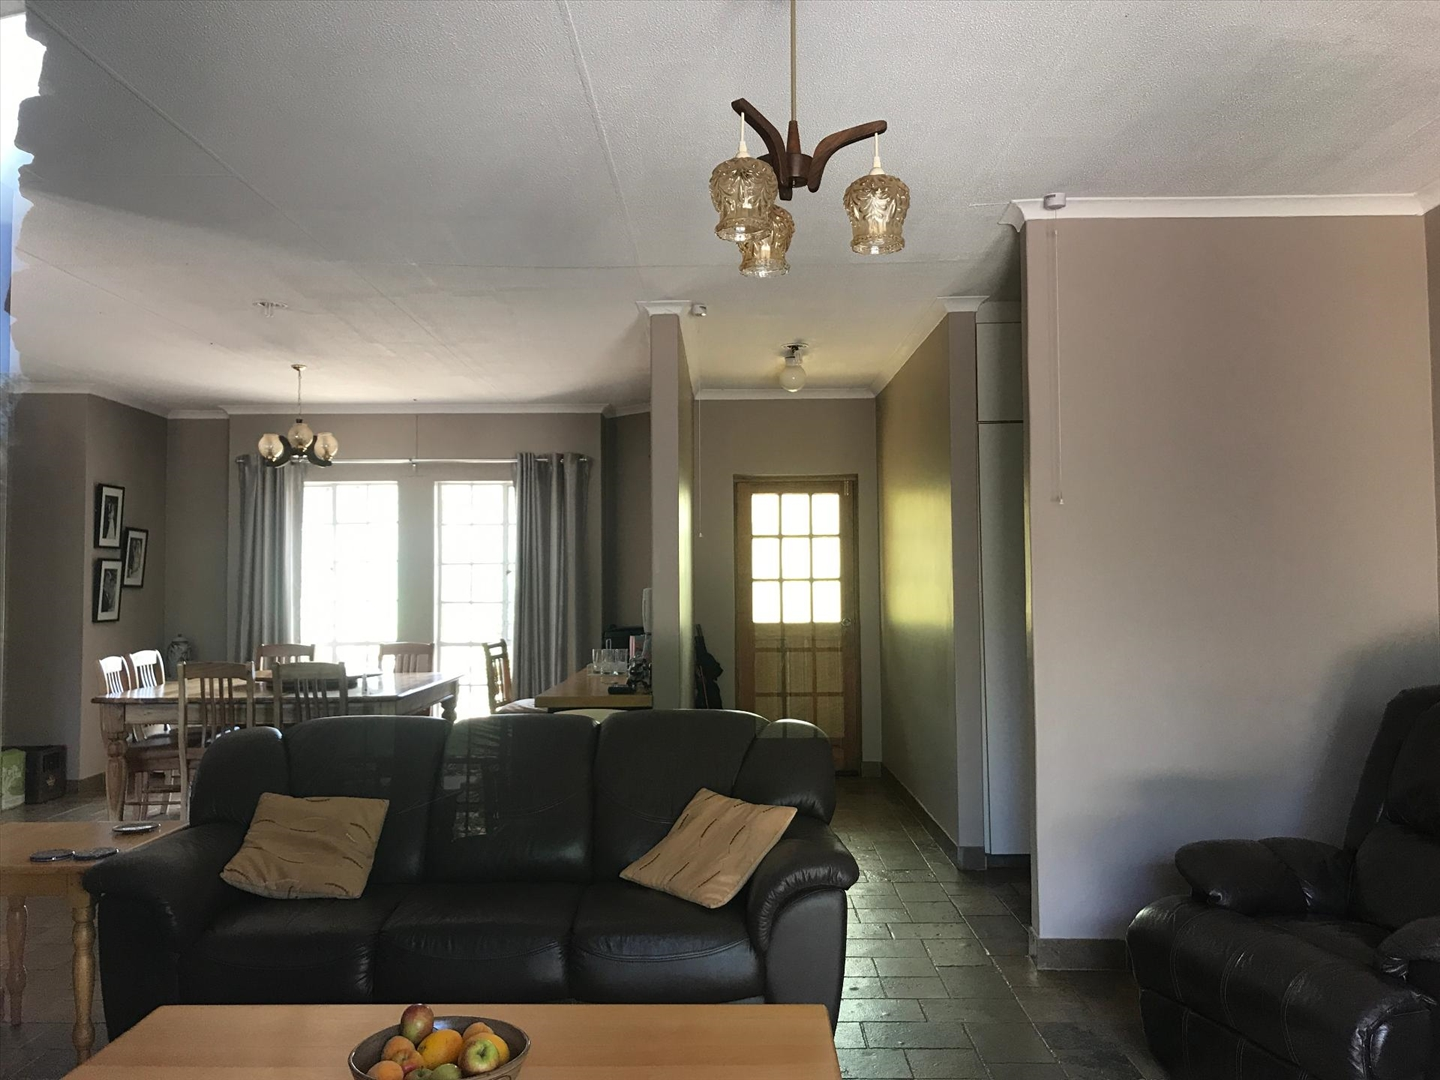 Two bedroom flat - living areas